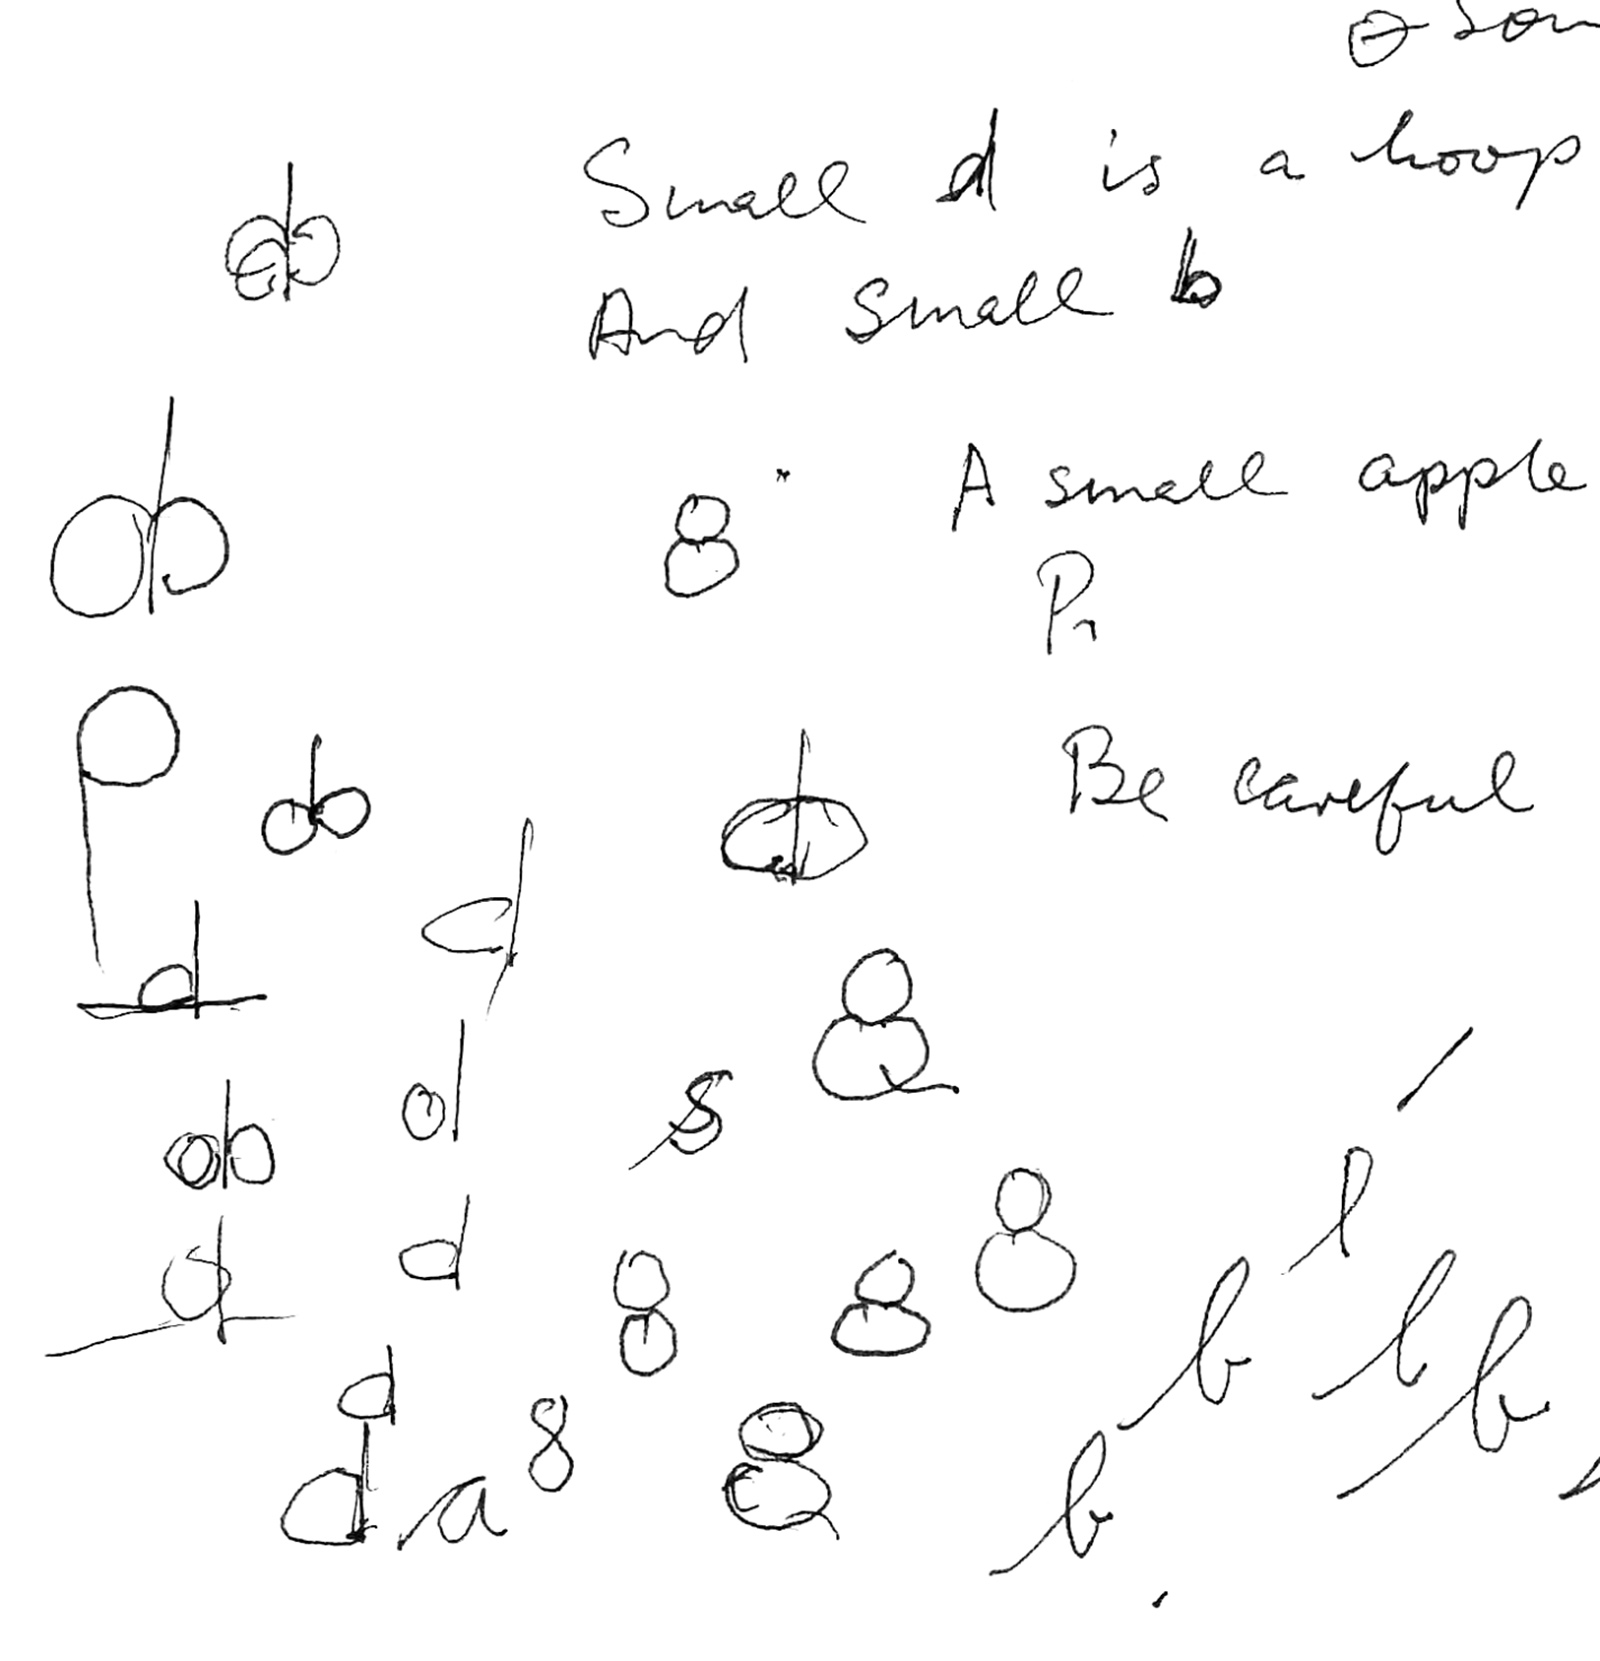 A detail of one of Seamus Heaney's 1984 worksheets for the poem 'Alphabets' showing the 'hoops' of 'd' and 'b' combining with a tail to become a cat